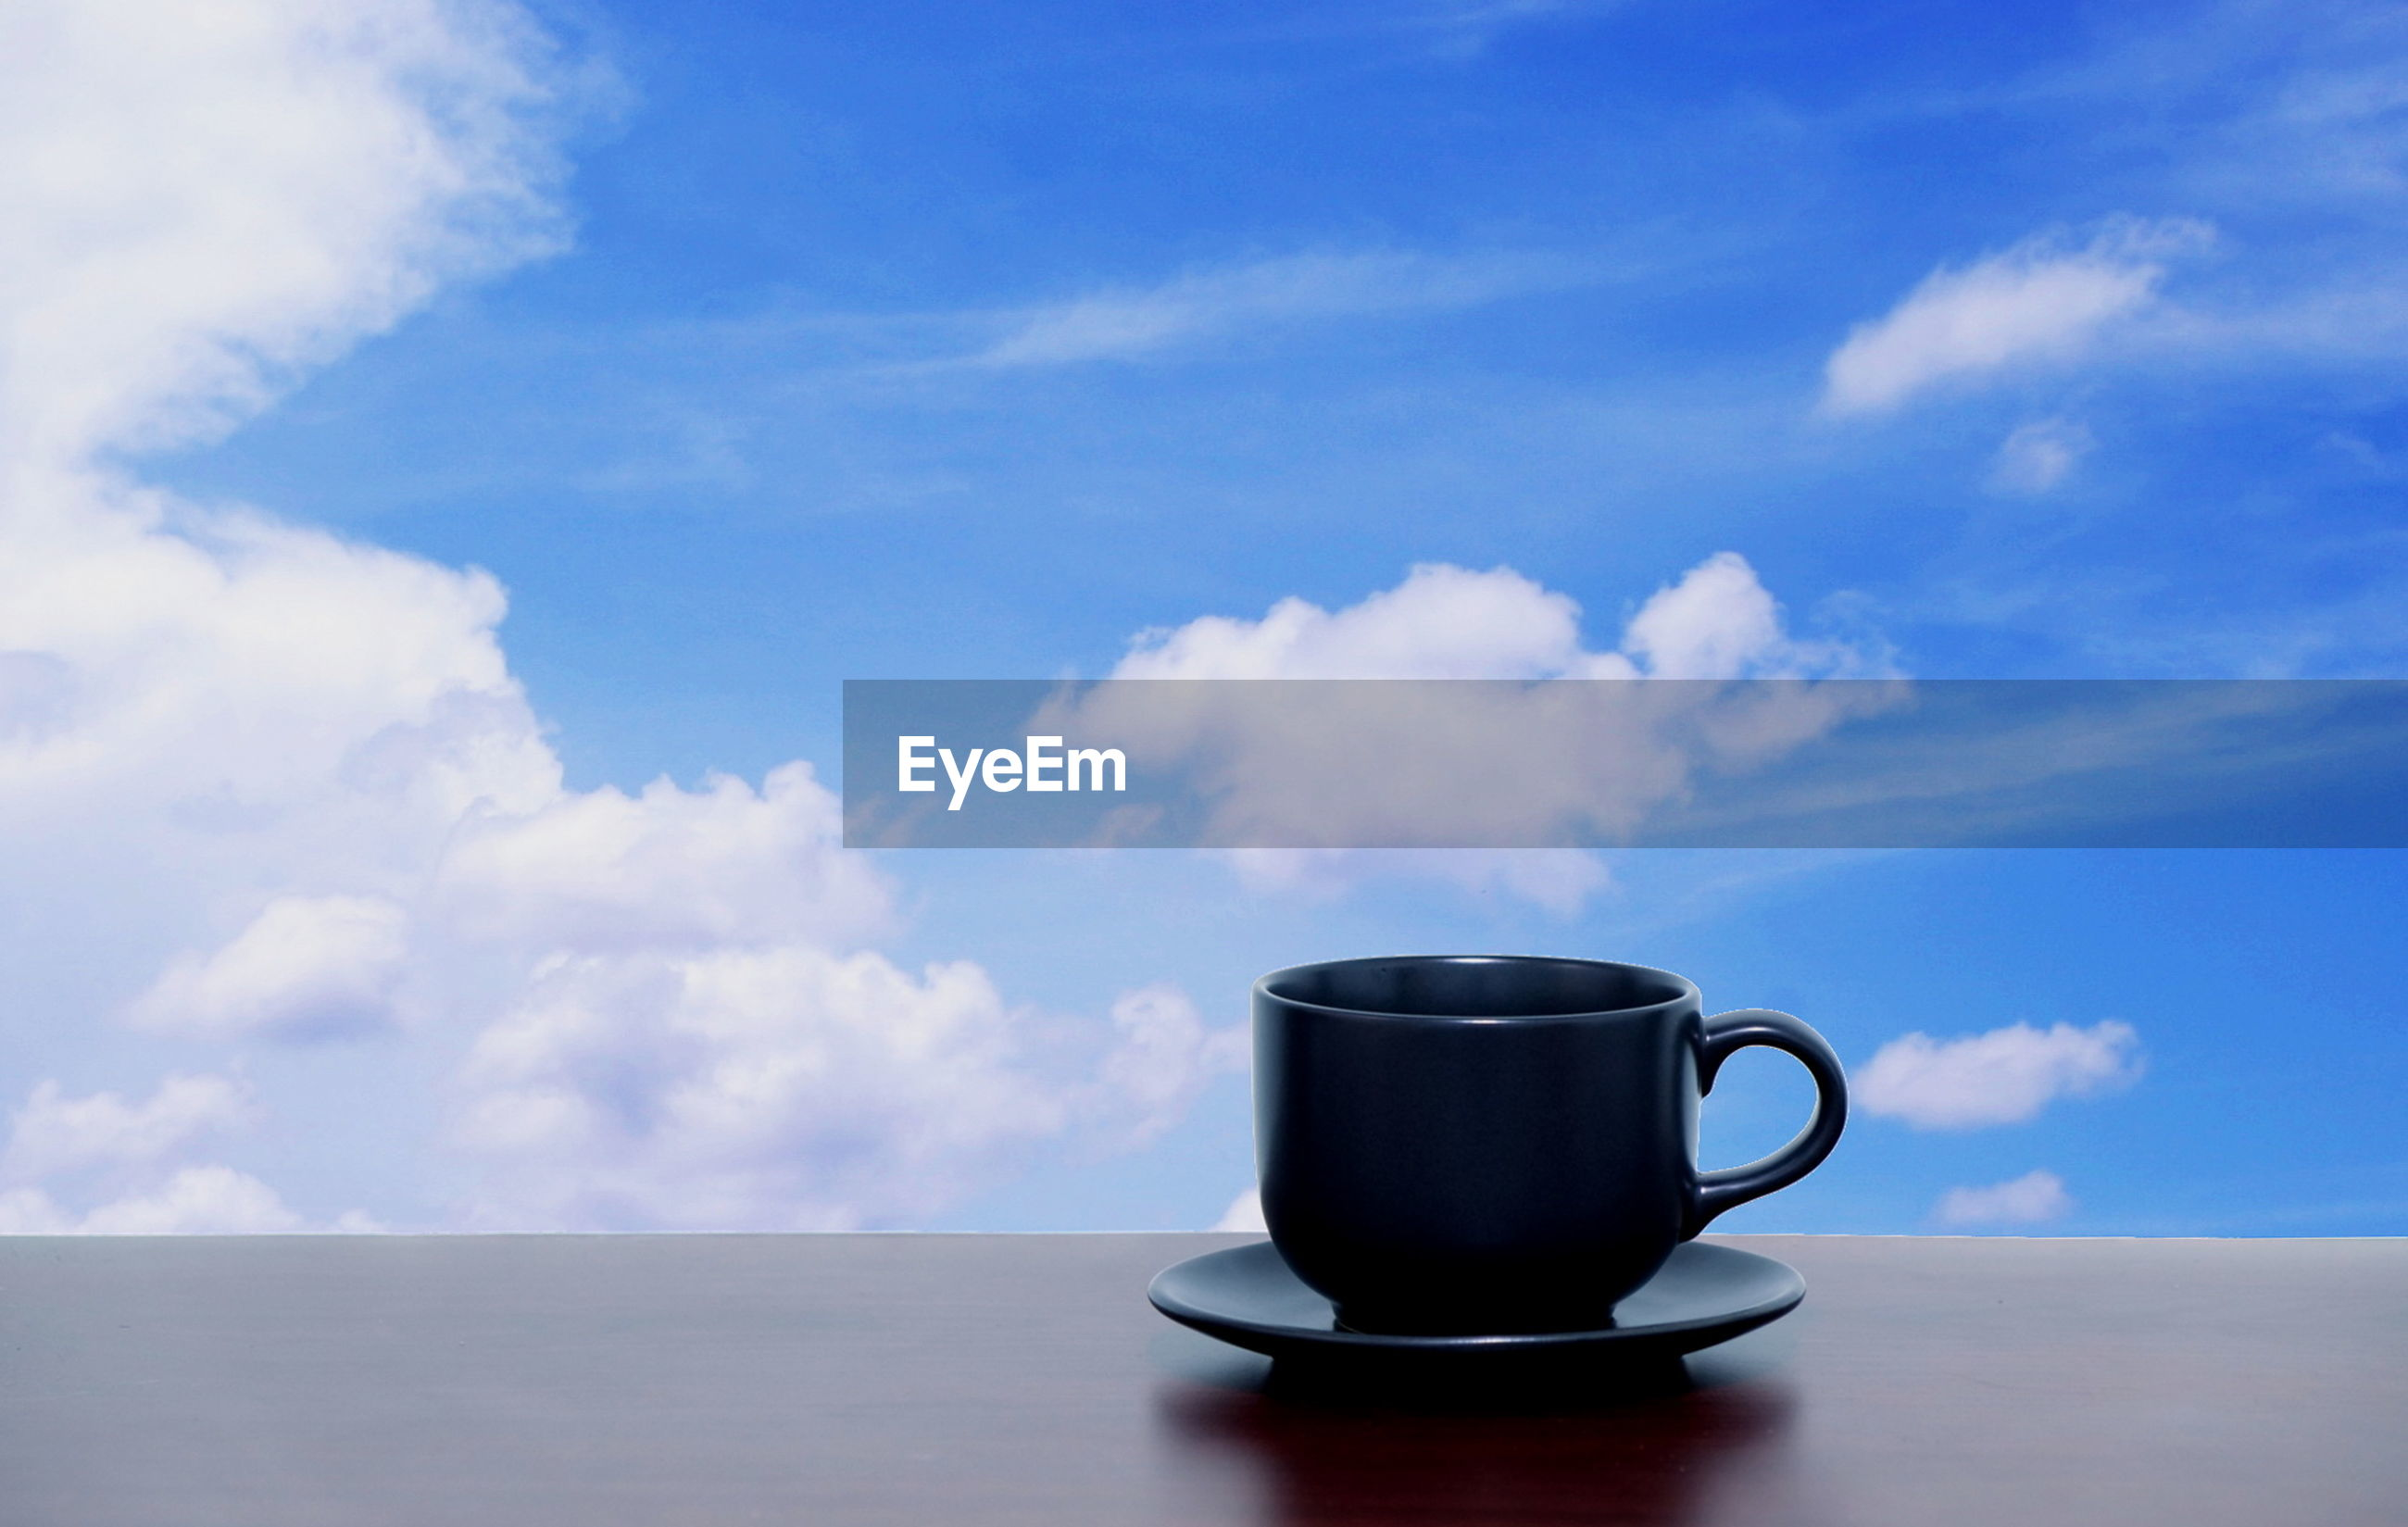 COFFEE CUP ON GLASS TABLE AGAINST BLUE SKY